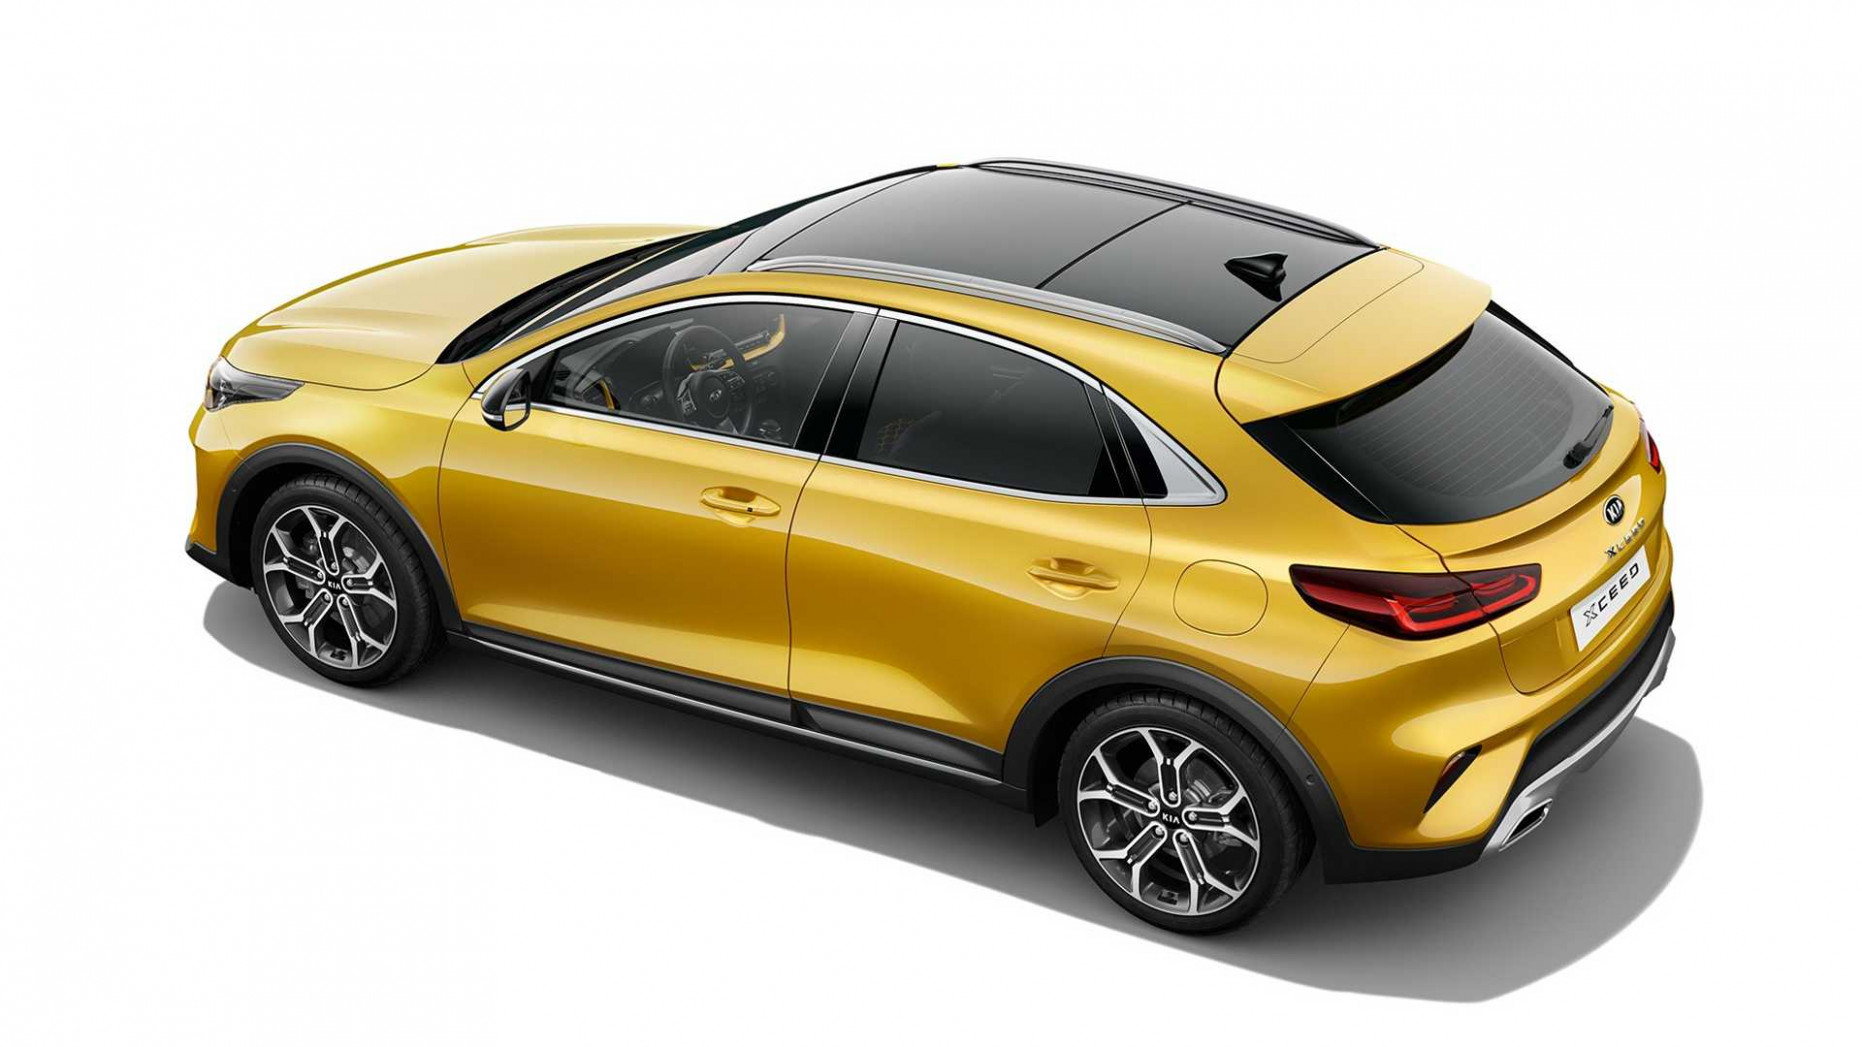 6 Kia XCeed Debuts As Stylish Compact Crossover For Europe - kia xceed crossover 2020